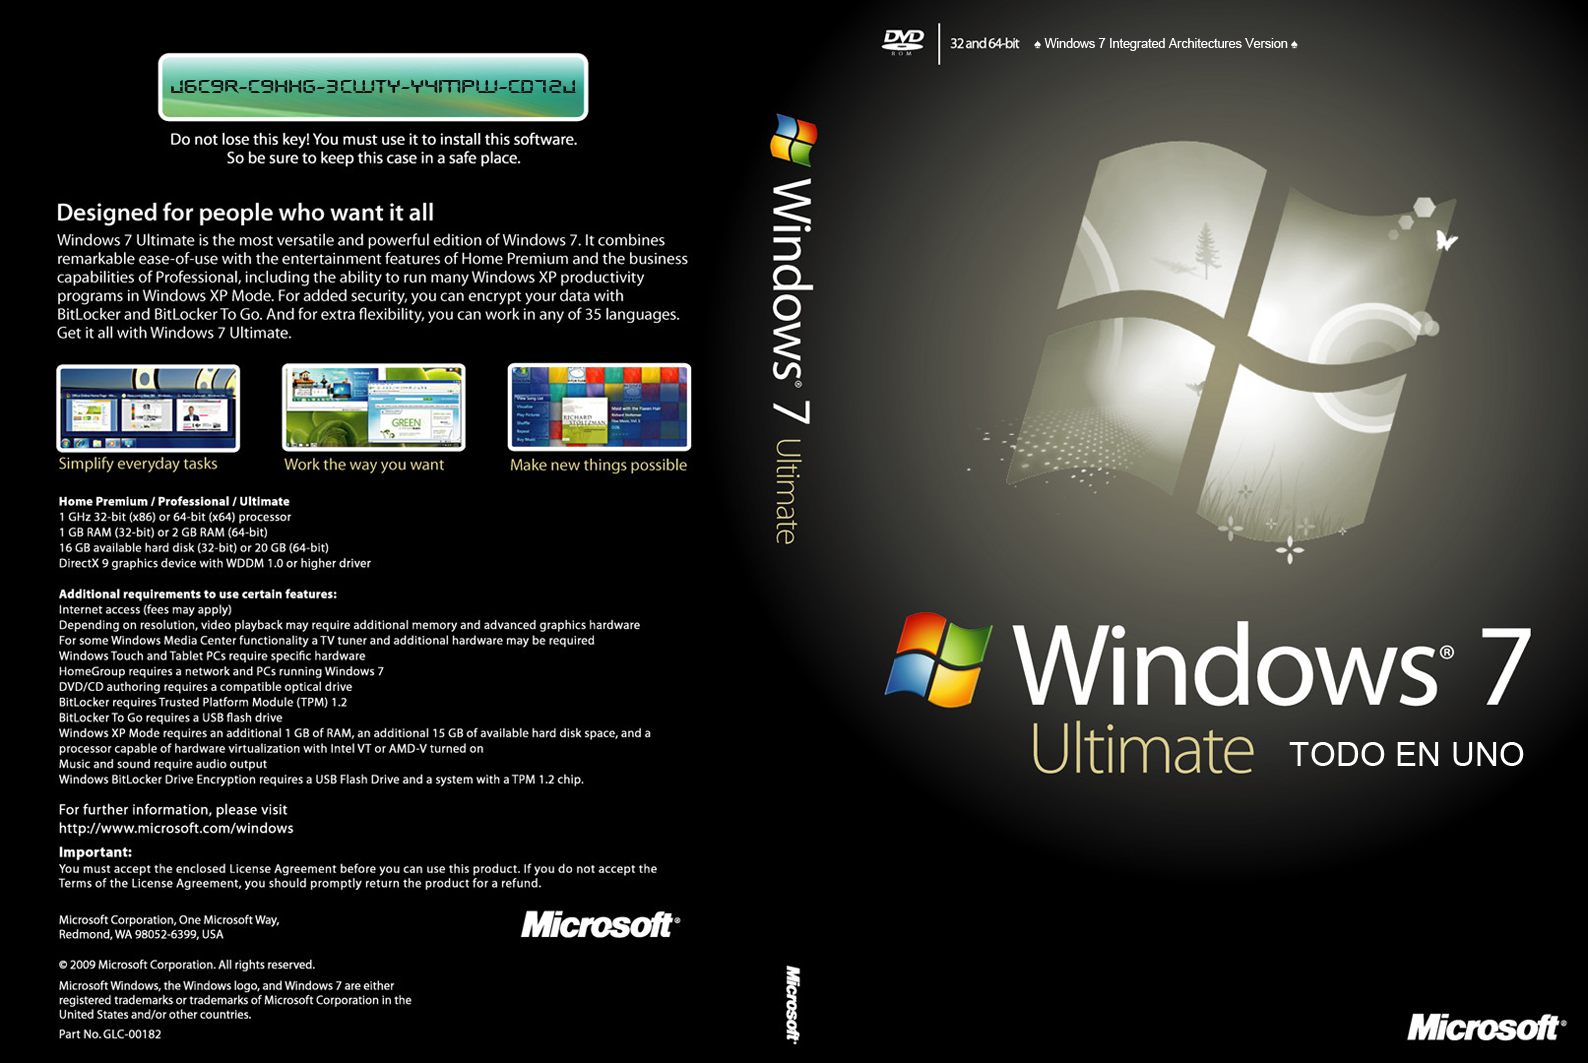 http://noob.hu/2010/08/29/Windows_7_DVD_Terminado_Todo_En_Uno.png